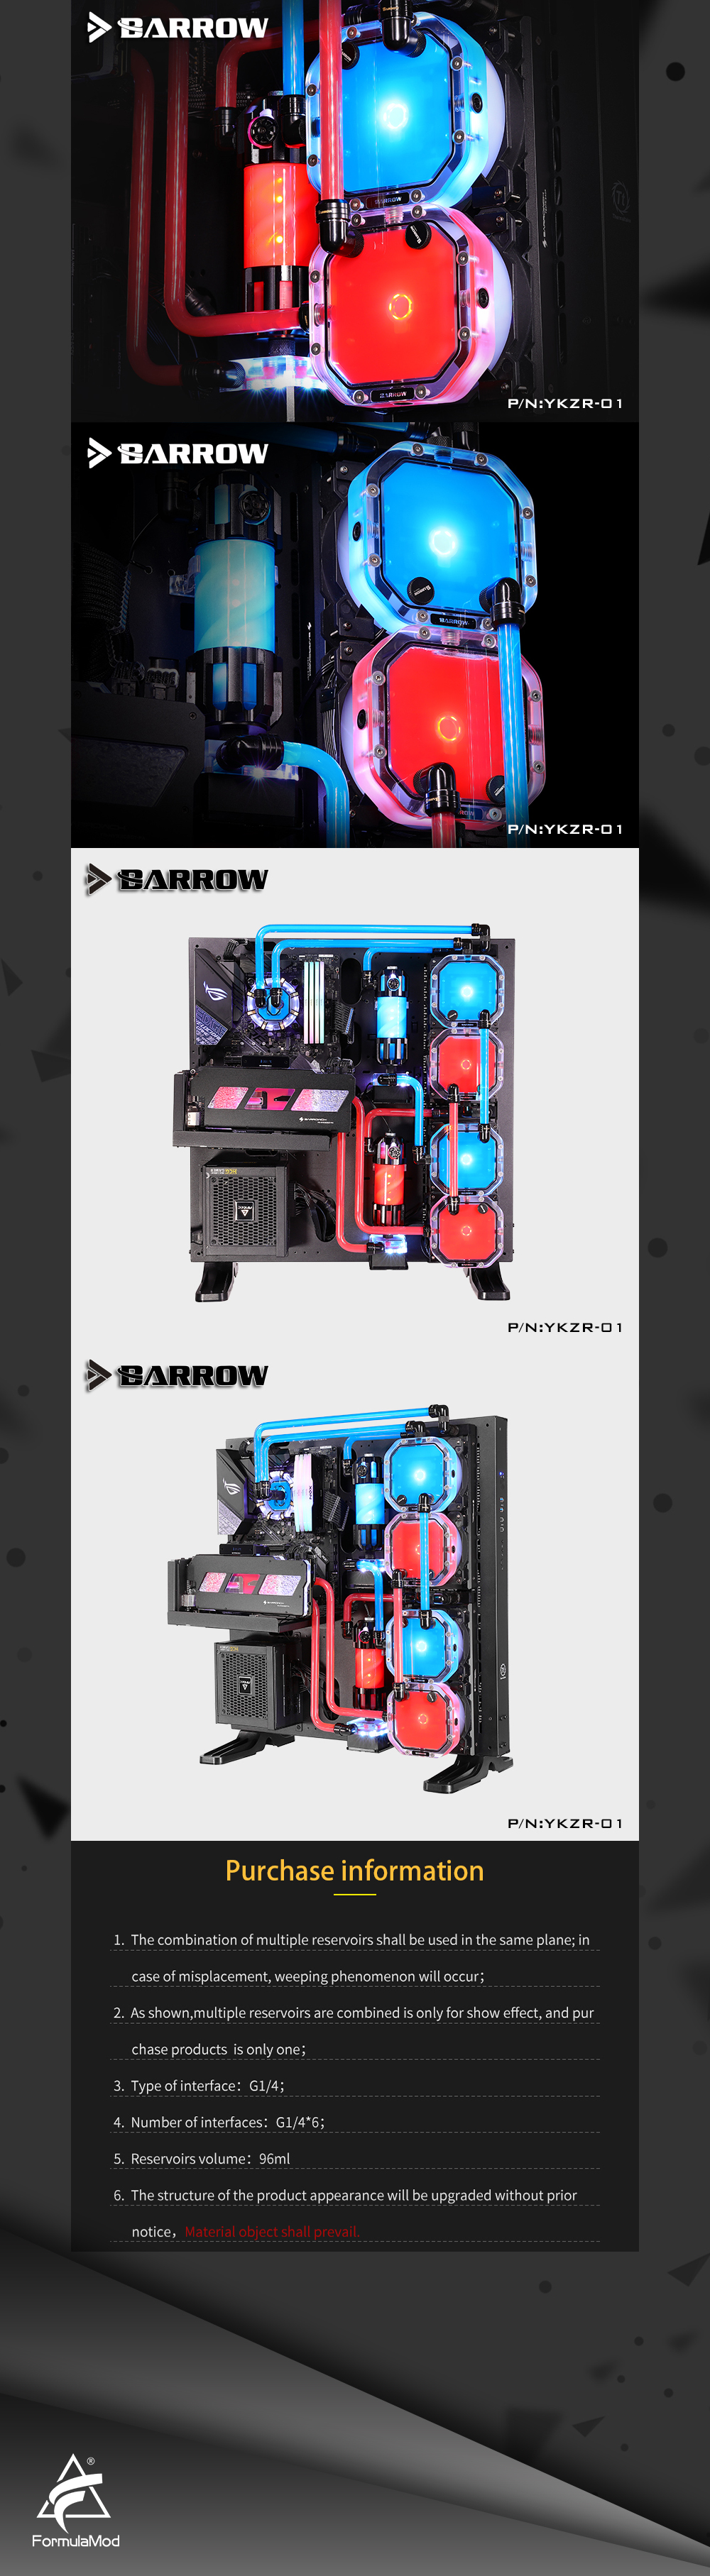 Barrowch Reservoirs with Multi Combination of Radiator Position, LRC 2.0, Acrylic Square Reservoirs, YKZR-01